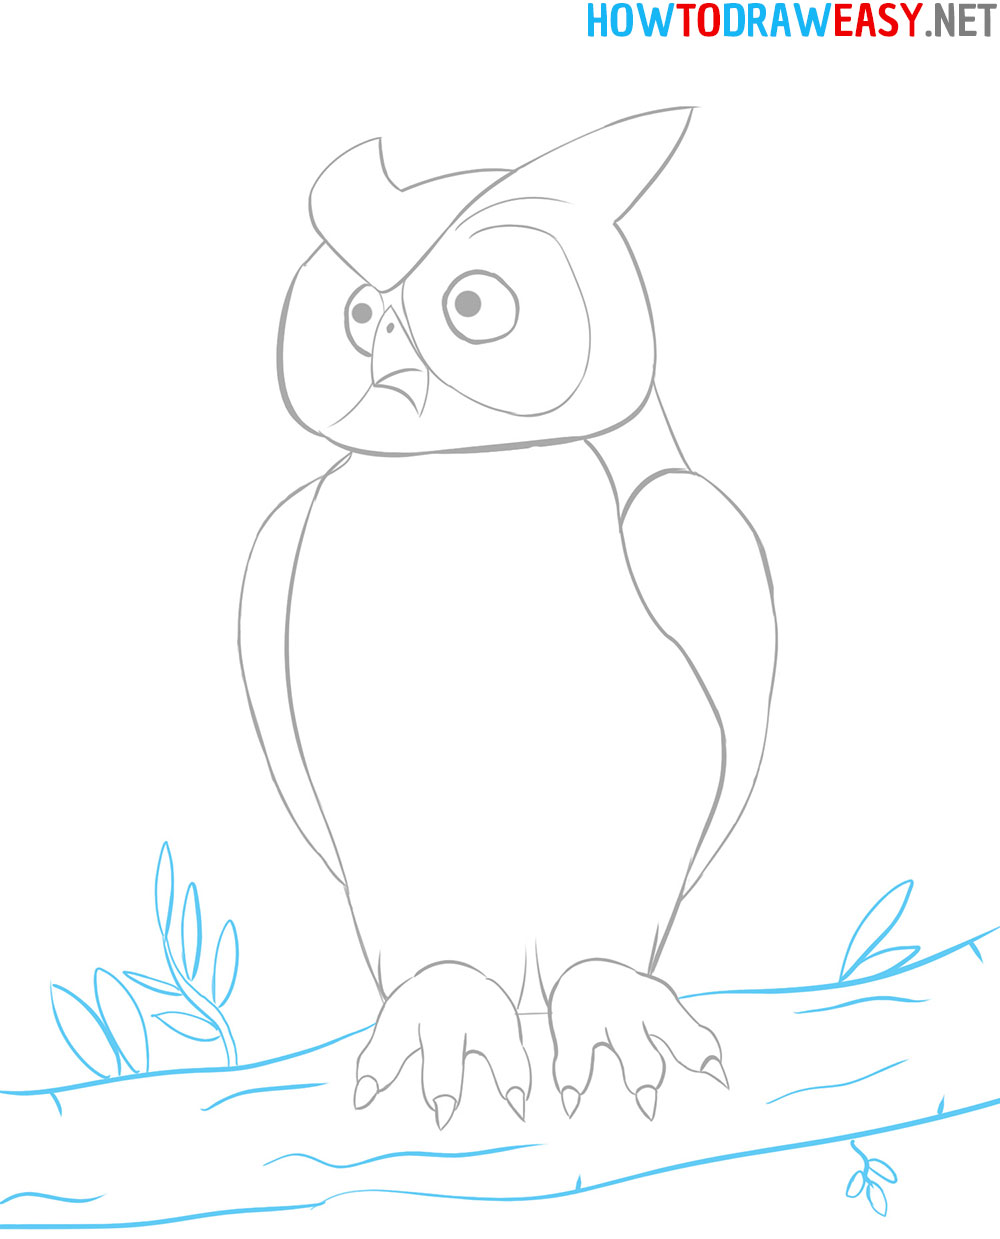 How to Draw an Owl   How to Draw Easy